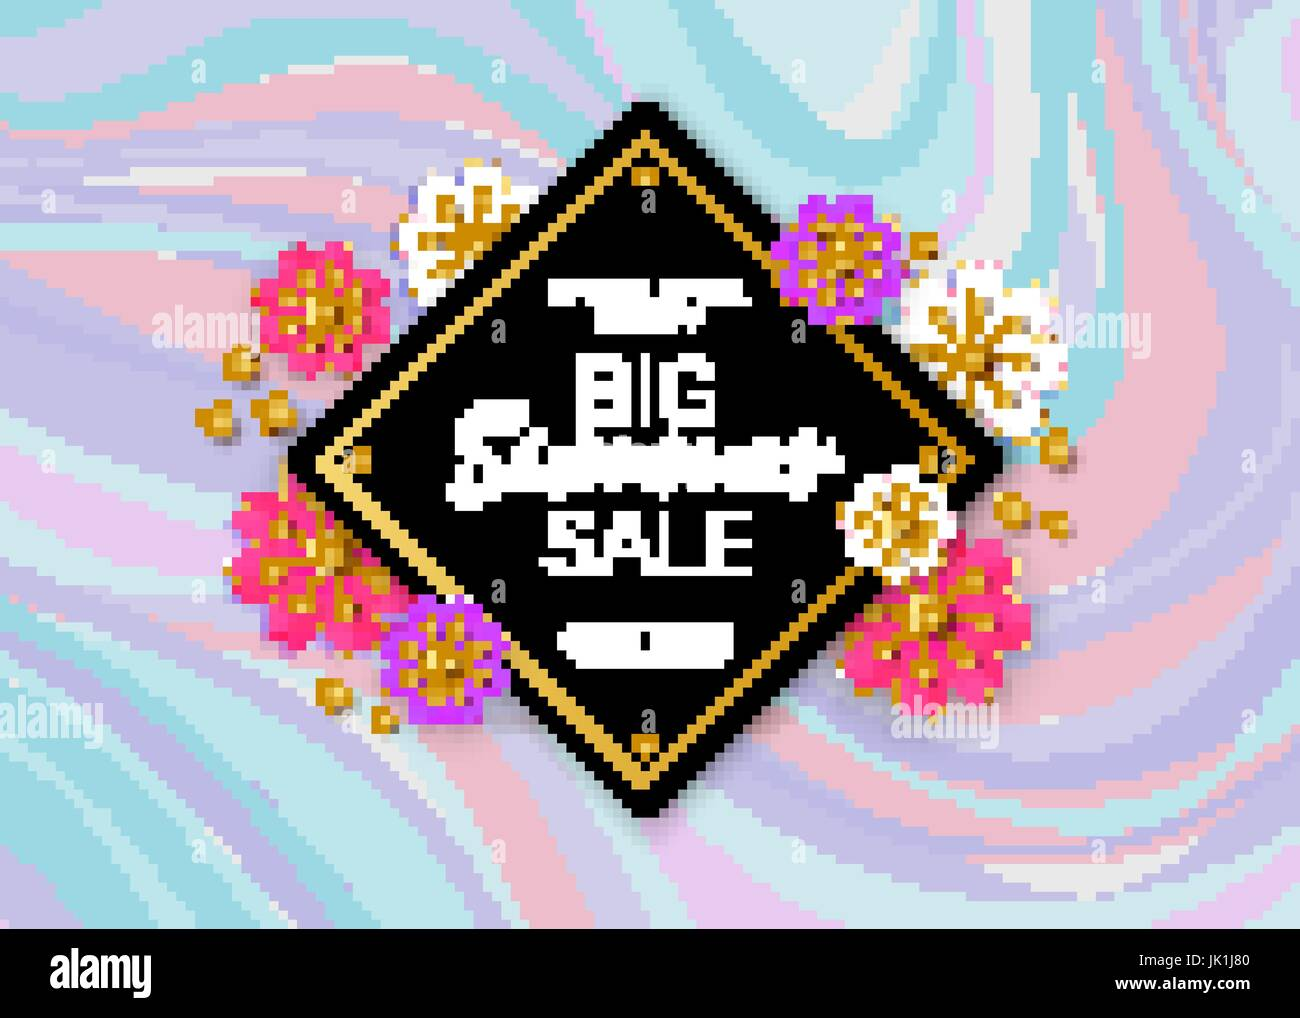 Summer Sale Background Layout For Banners Wallpaper Flyers Invitation Posters Brochure Voucher Discount Vector Illustration Template Marble Backdrop